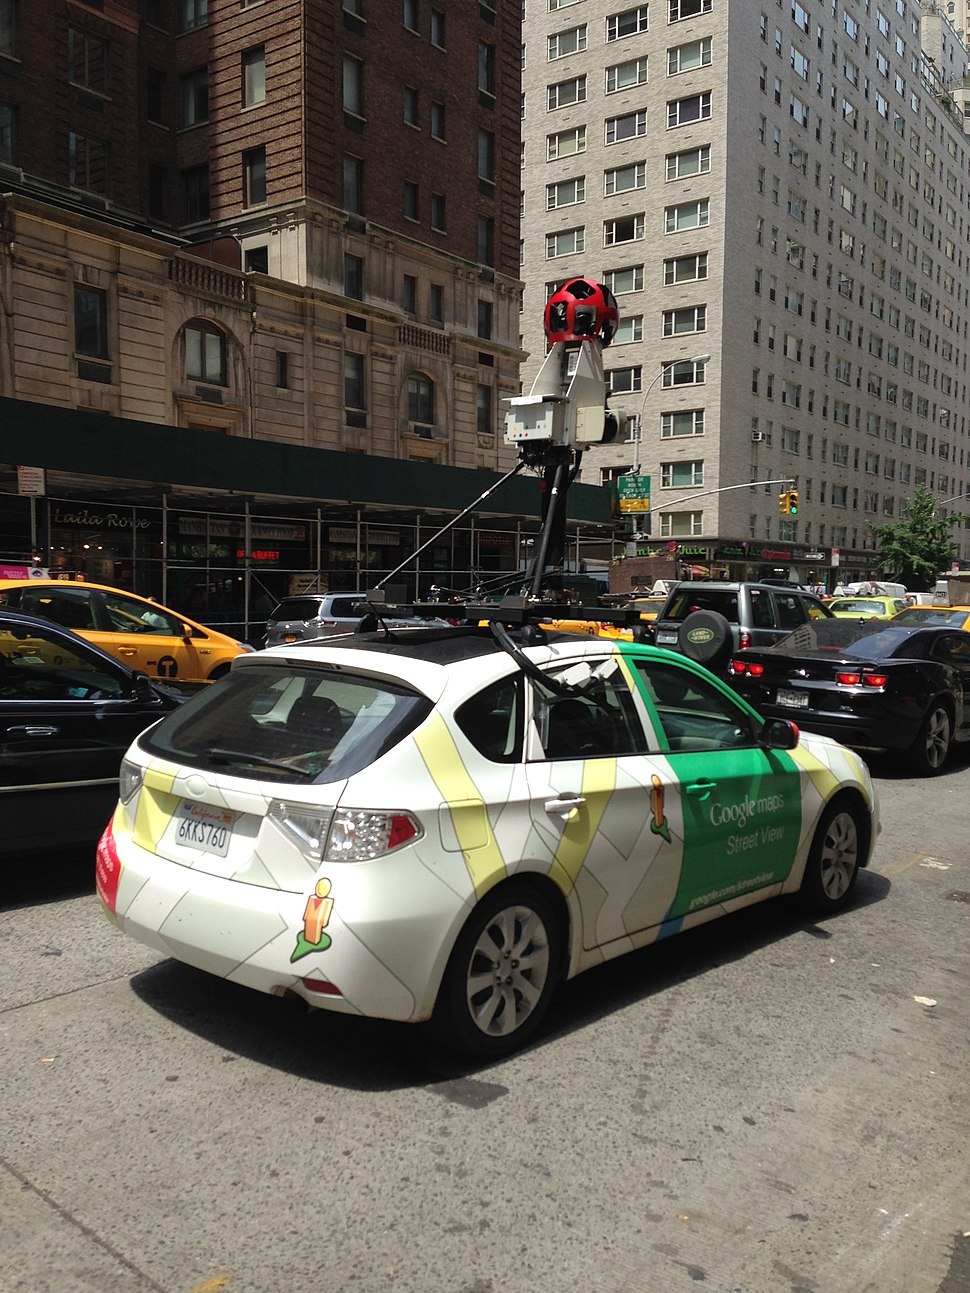 Rear view of Google Street View car